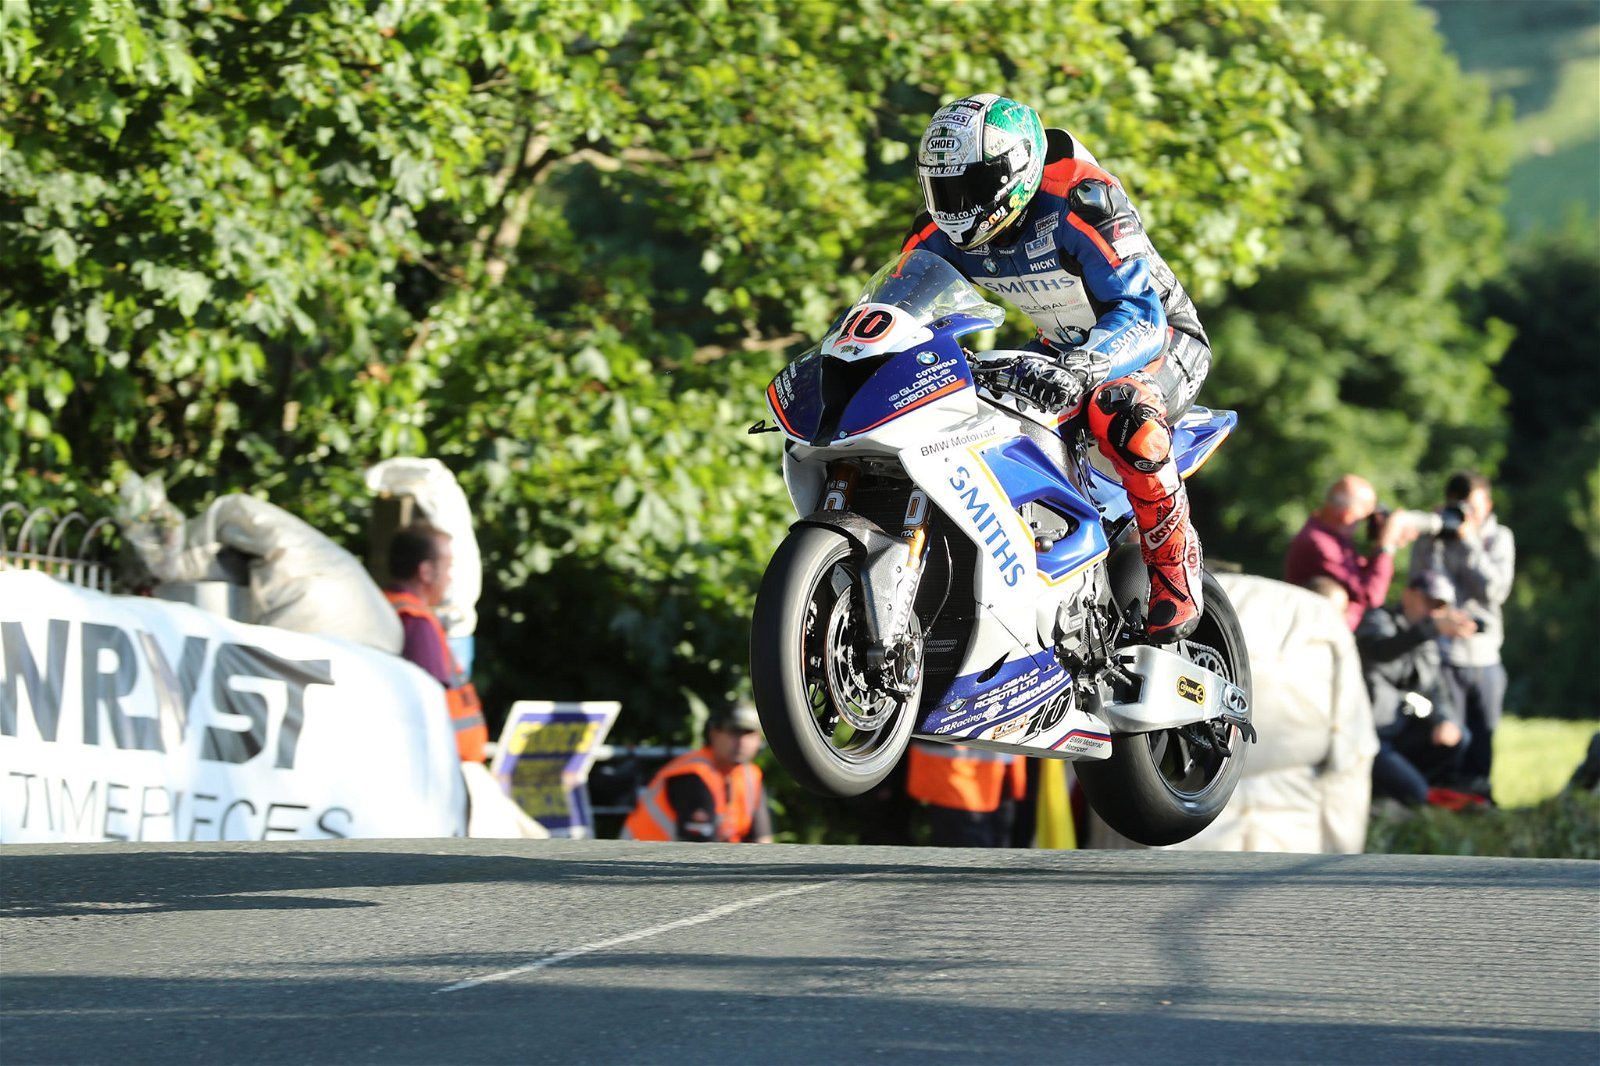 Peter Hickman at the TT in 2017 credit Pacemaker Press International